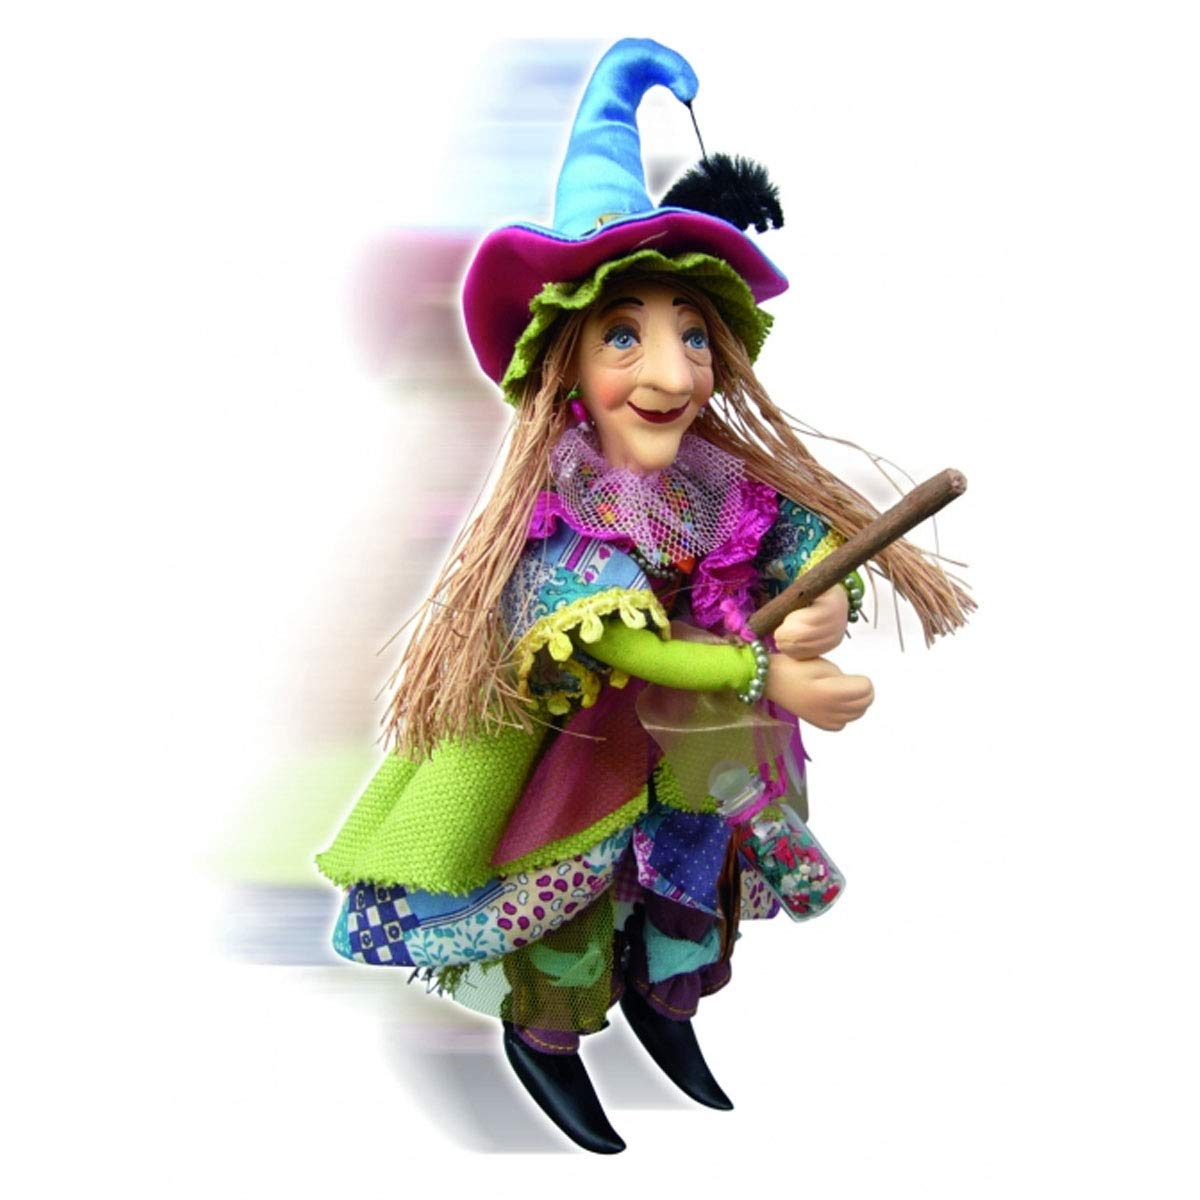 Witches of Pendle - Alice Nutter Witch Flying (Floral) 24cm 5897S-5